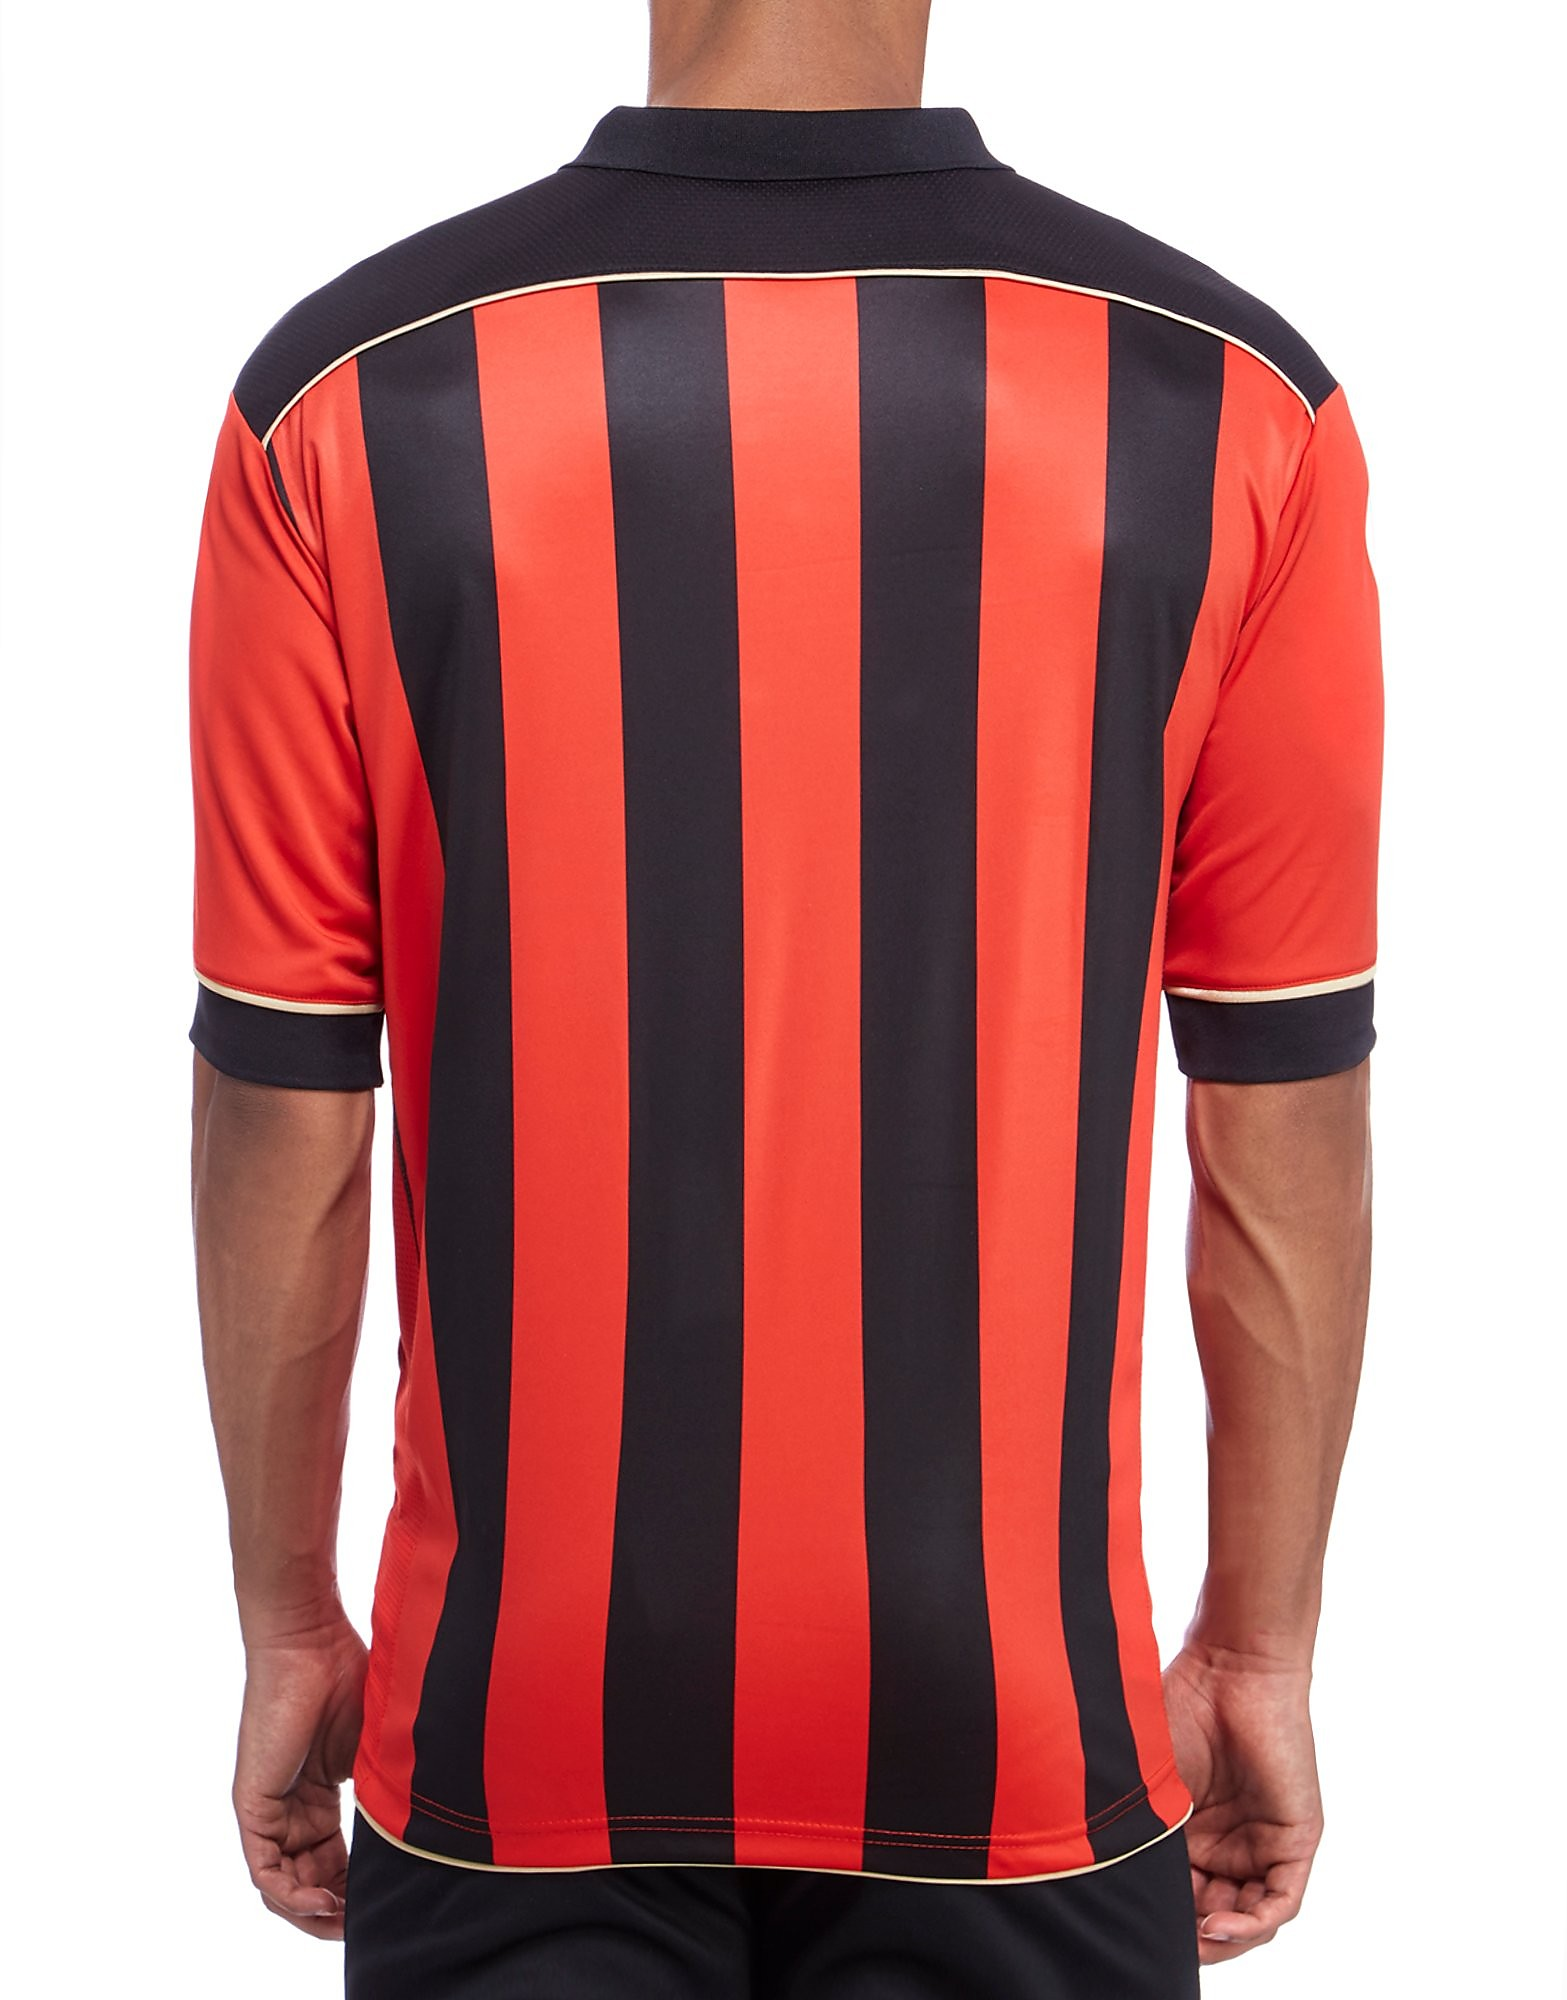 JD AFC Bournemouth 2016/17 Home Shirt